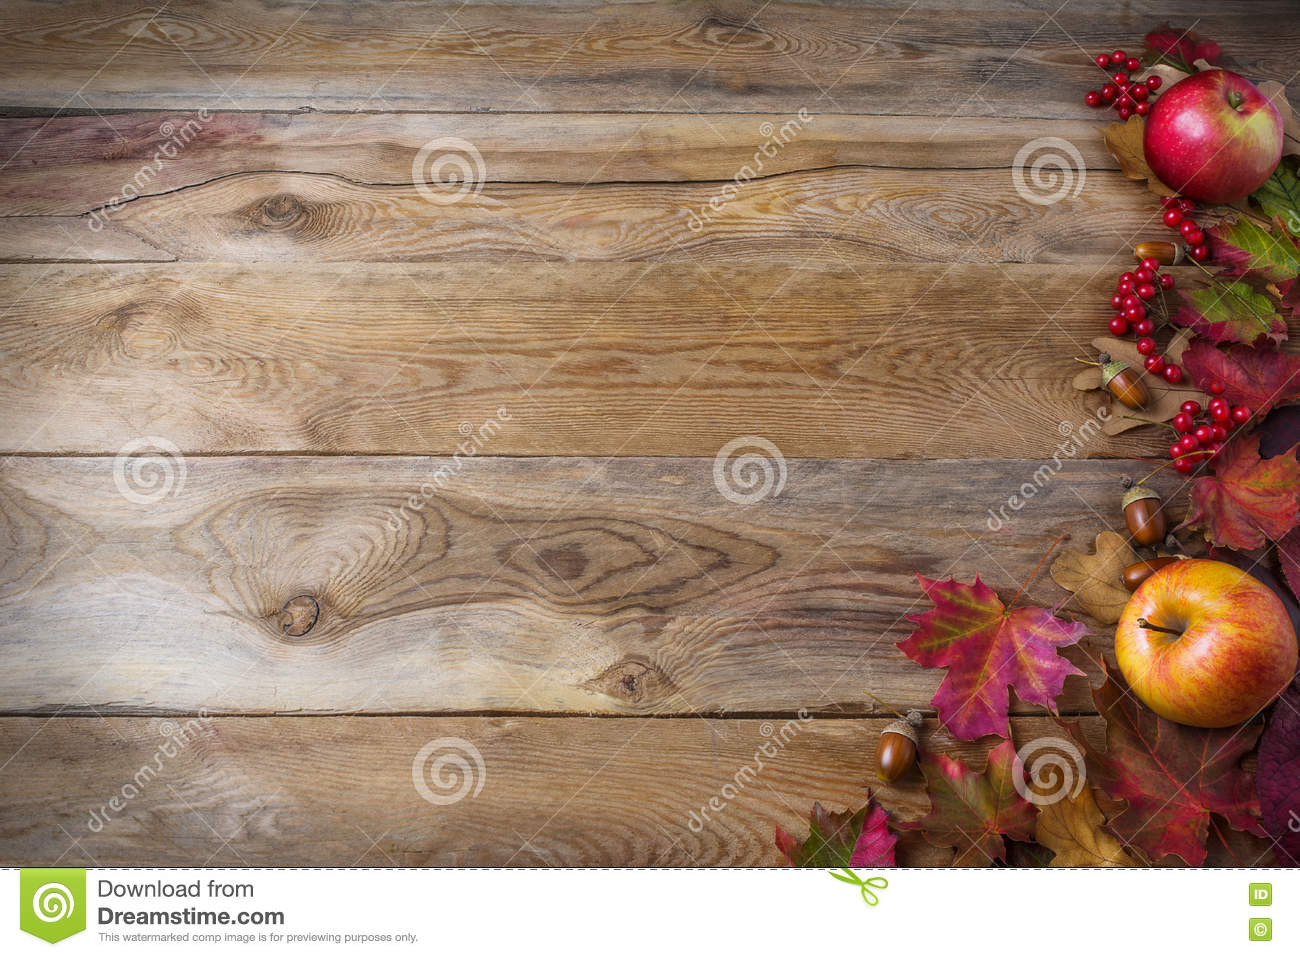 Thanksgiving background with apples, acorns, berries and fall le